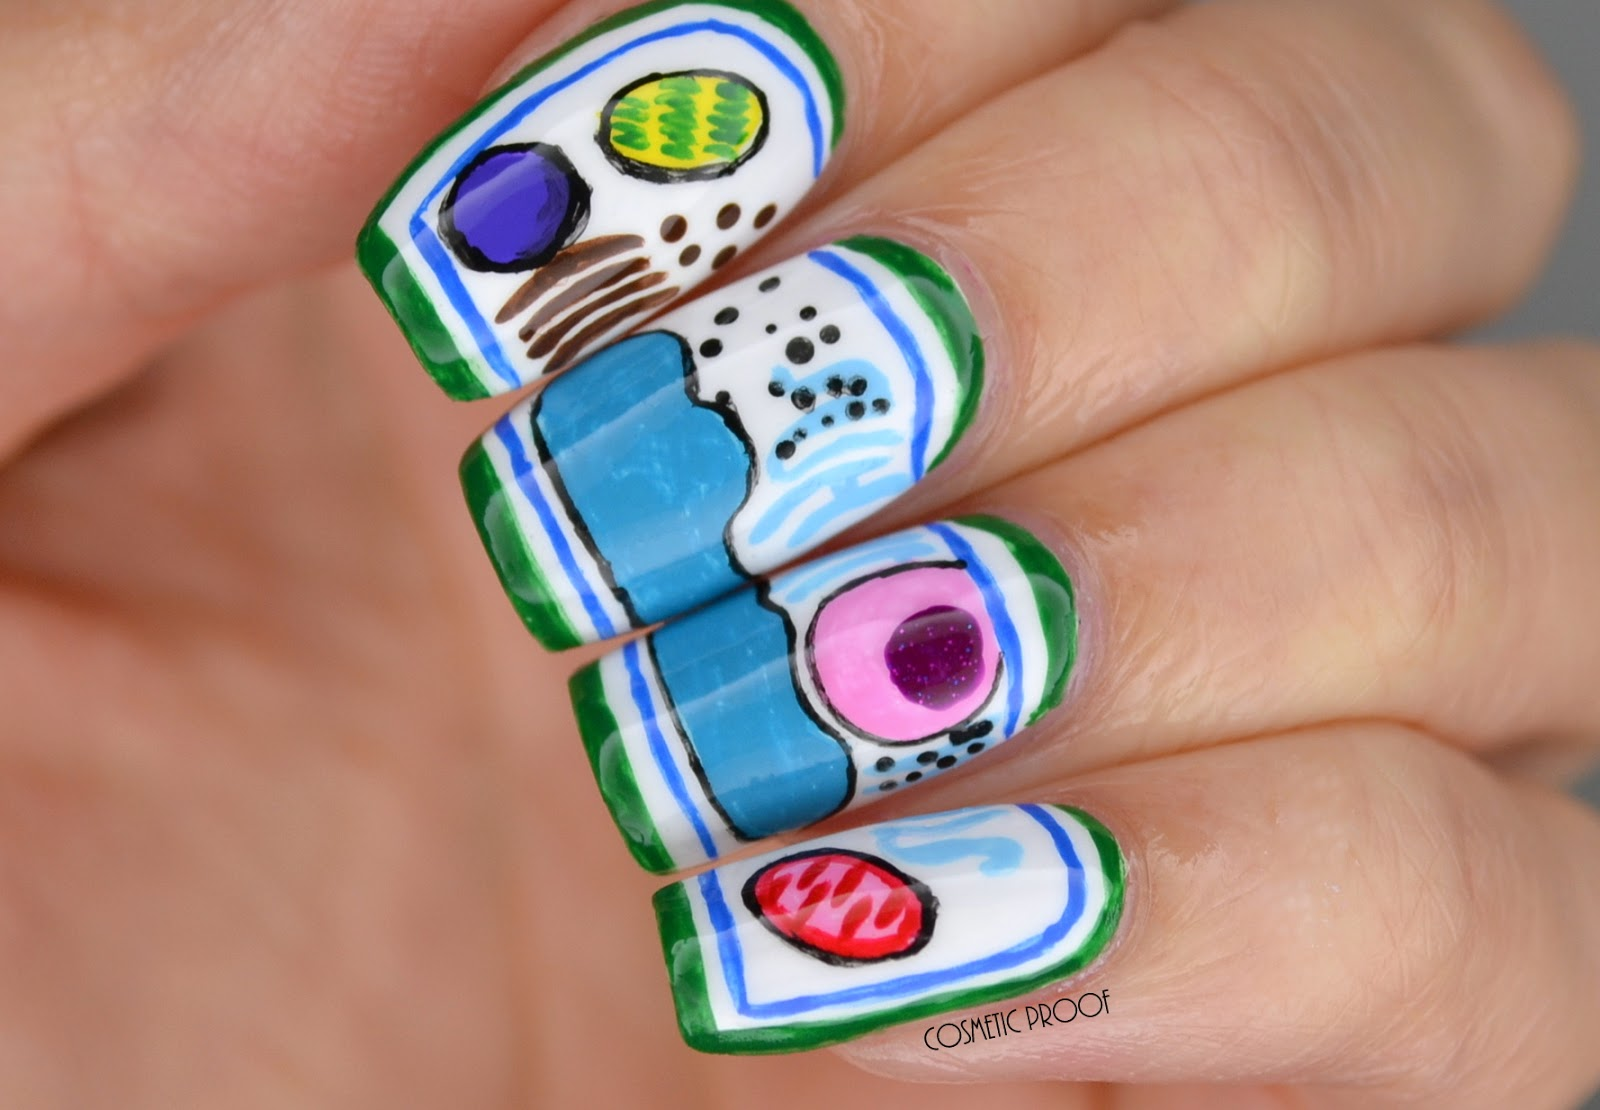 Nail Art Ideas » Nerdy Nail Art - Pictures of Nail Art Design Ideas